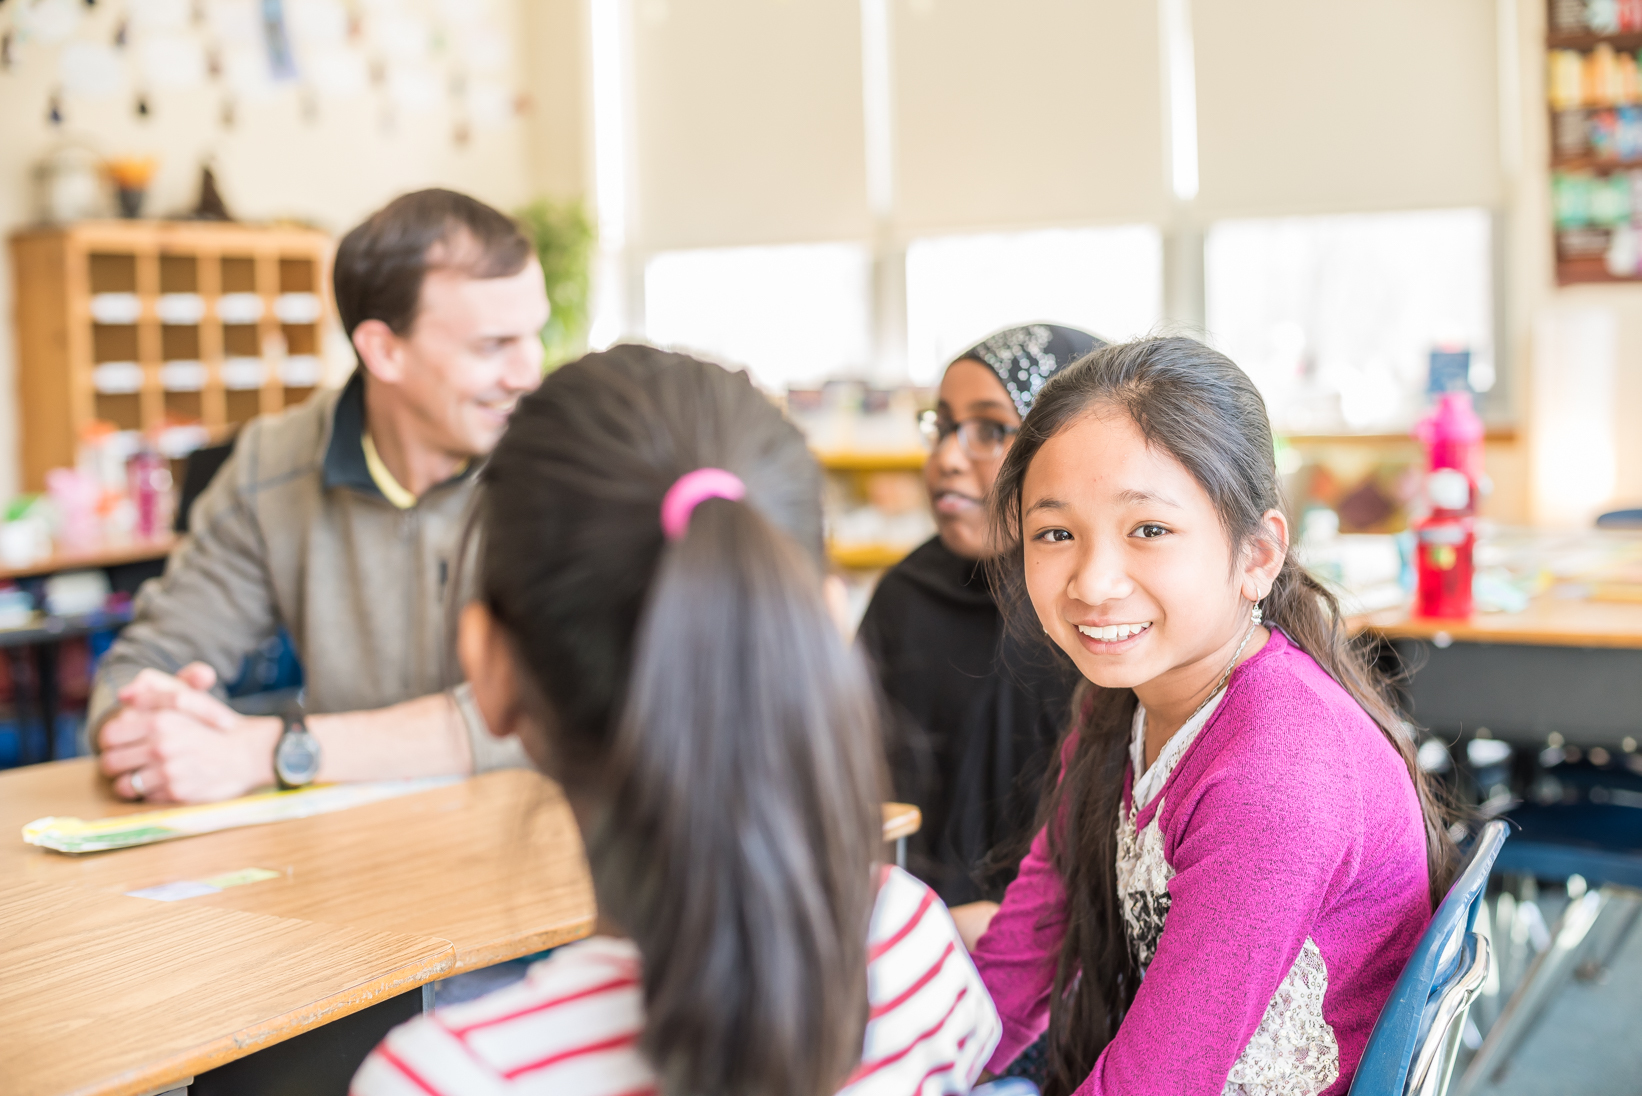 Unum employees serve as reading mentors to students from Presumpscot School in Portland, Maine. (Photo: Business Wire)